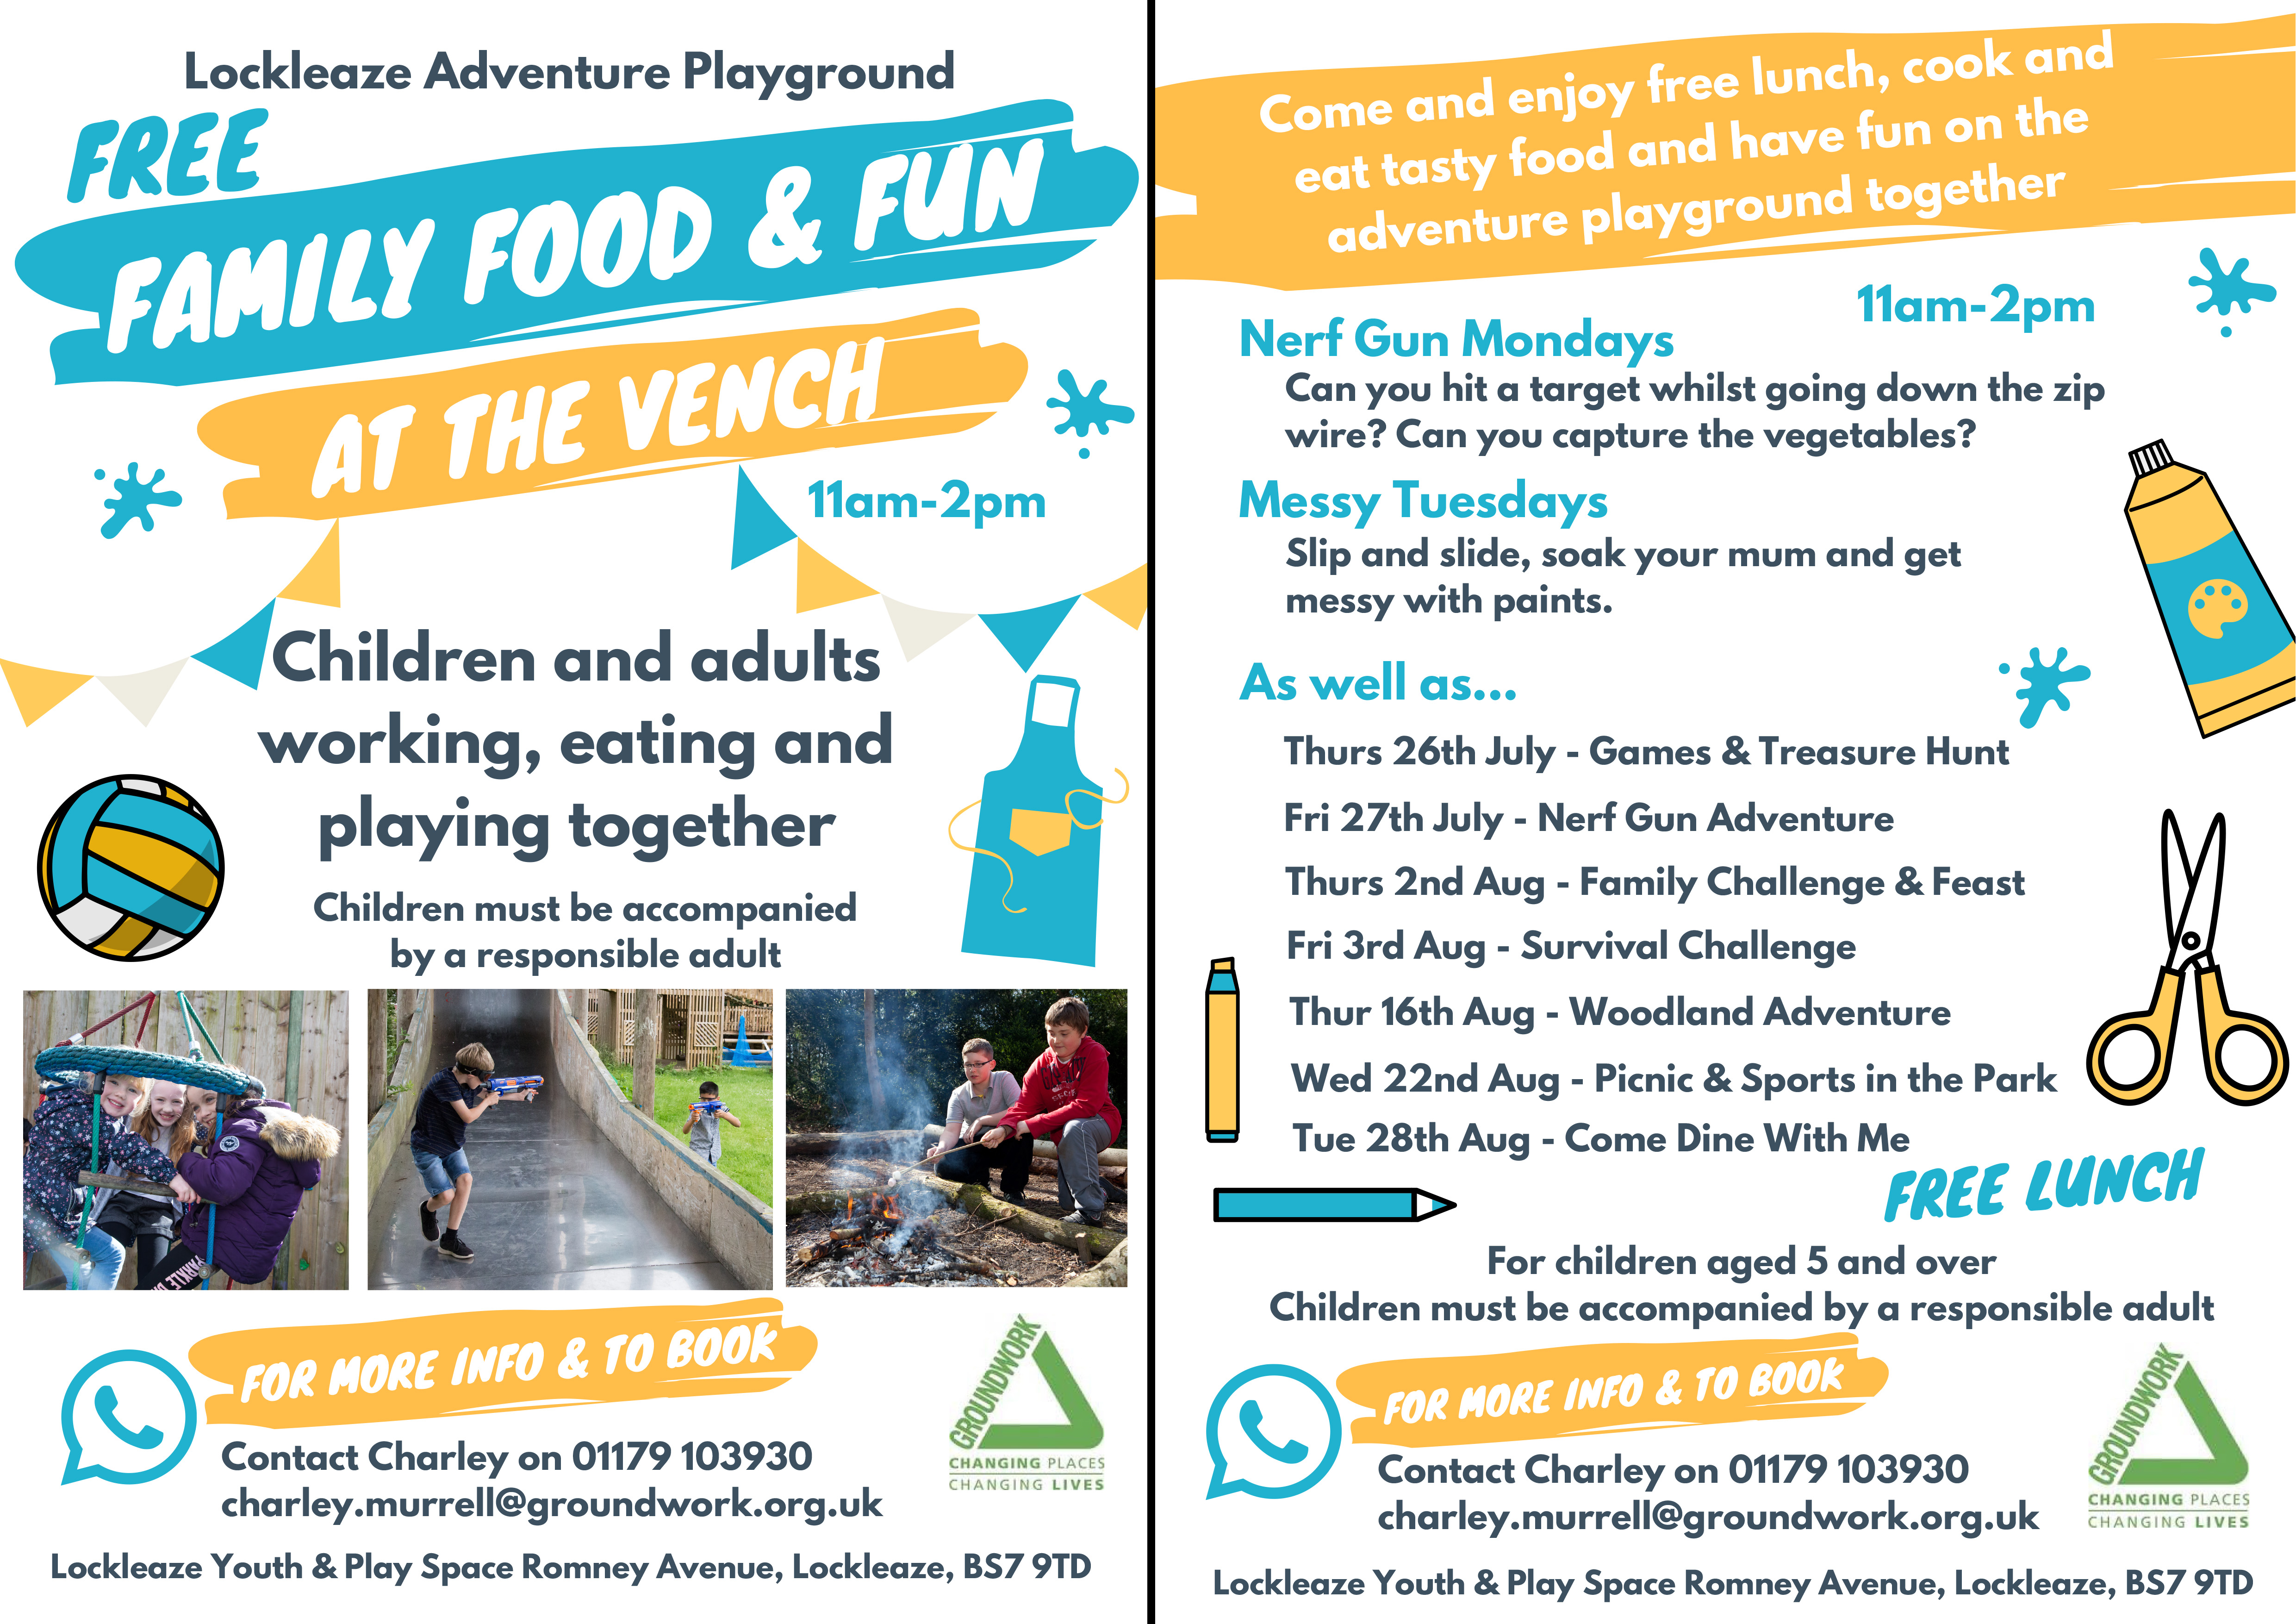 Family Food Fun Summer 2018 1 - Free Family Food and Fun Events in Lockleaze